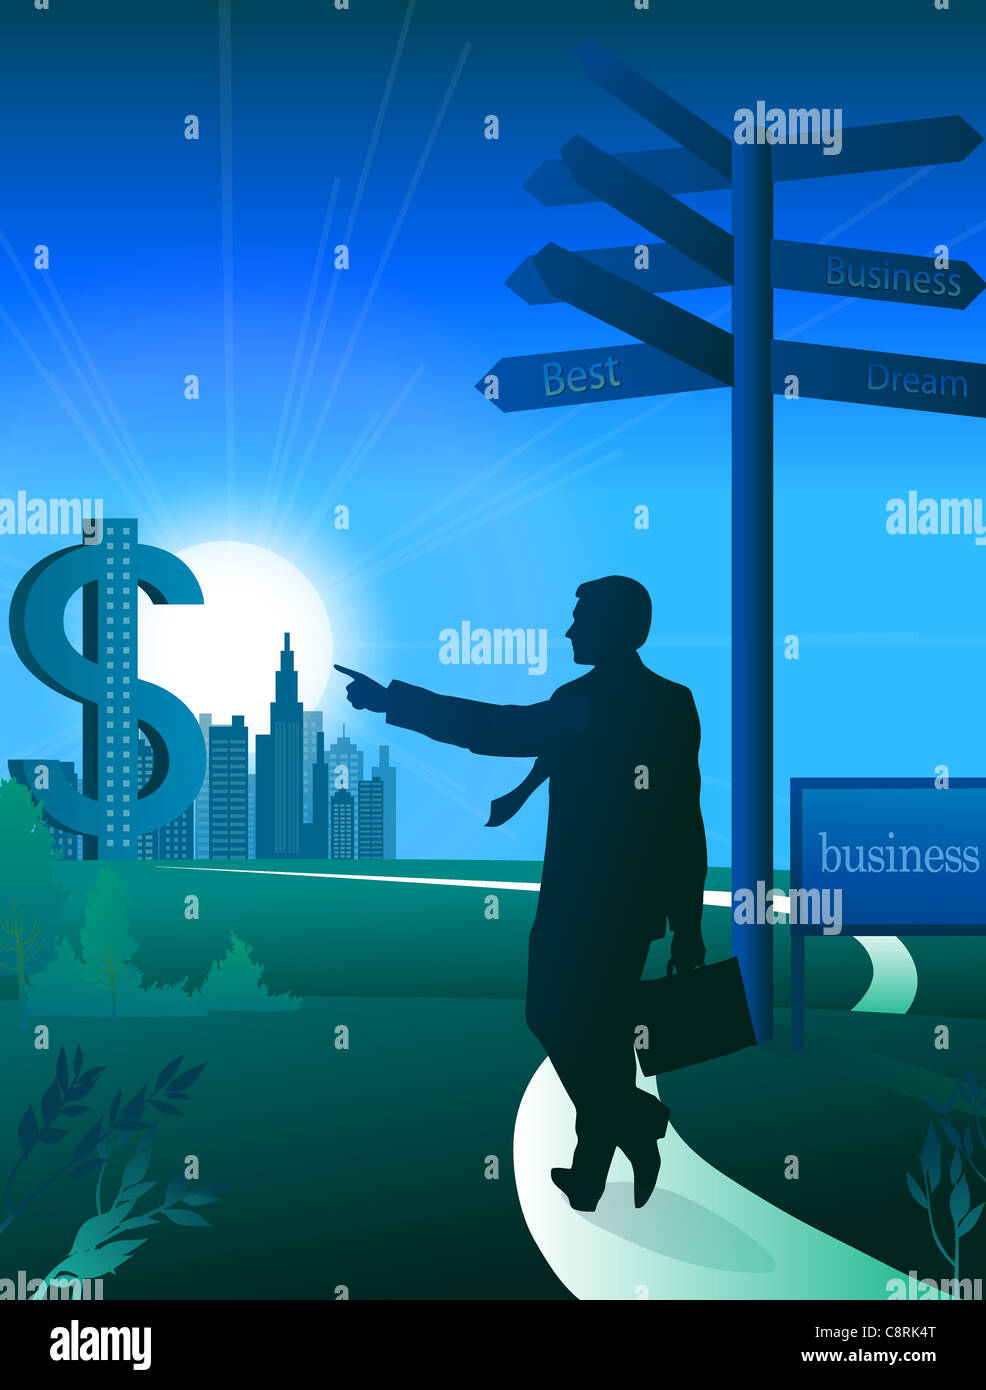 Illustration of businessman and dollar sign - Stock Image